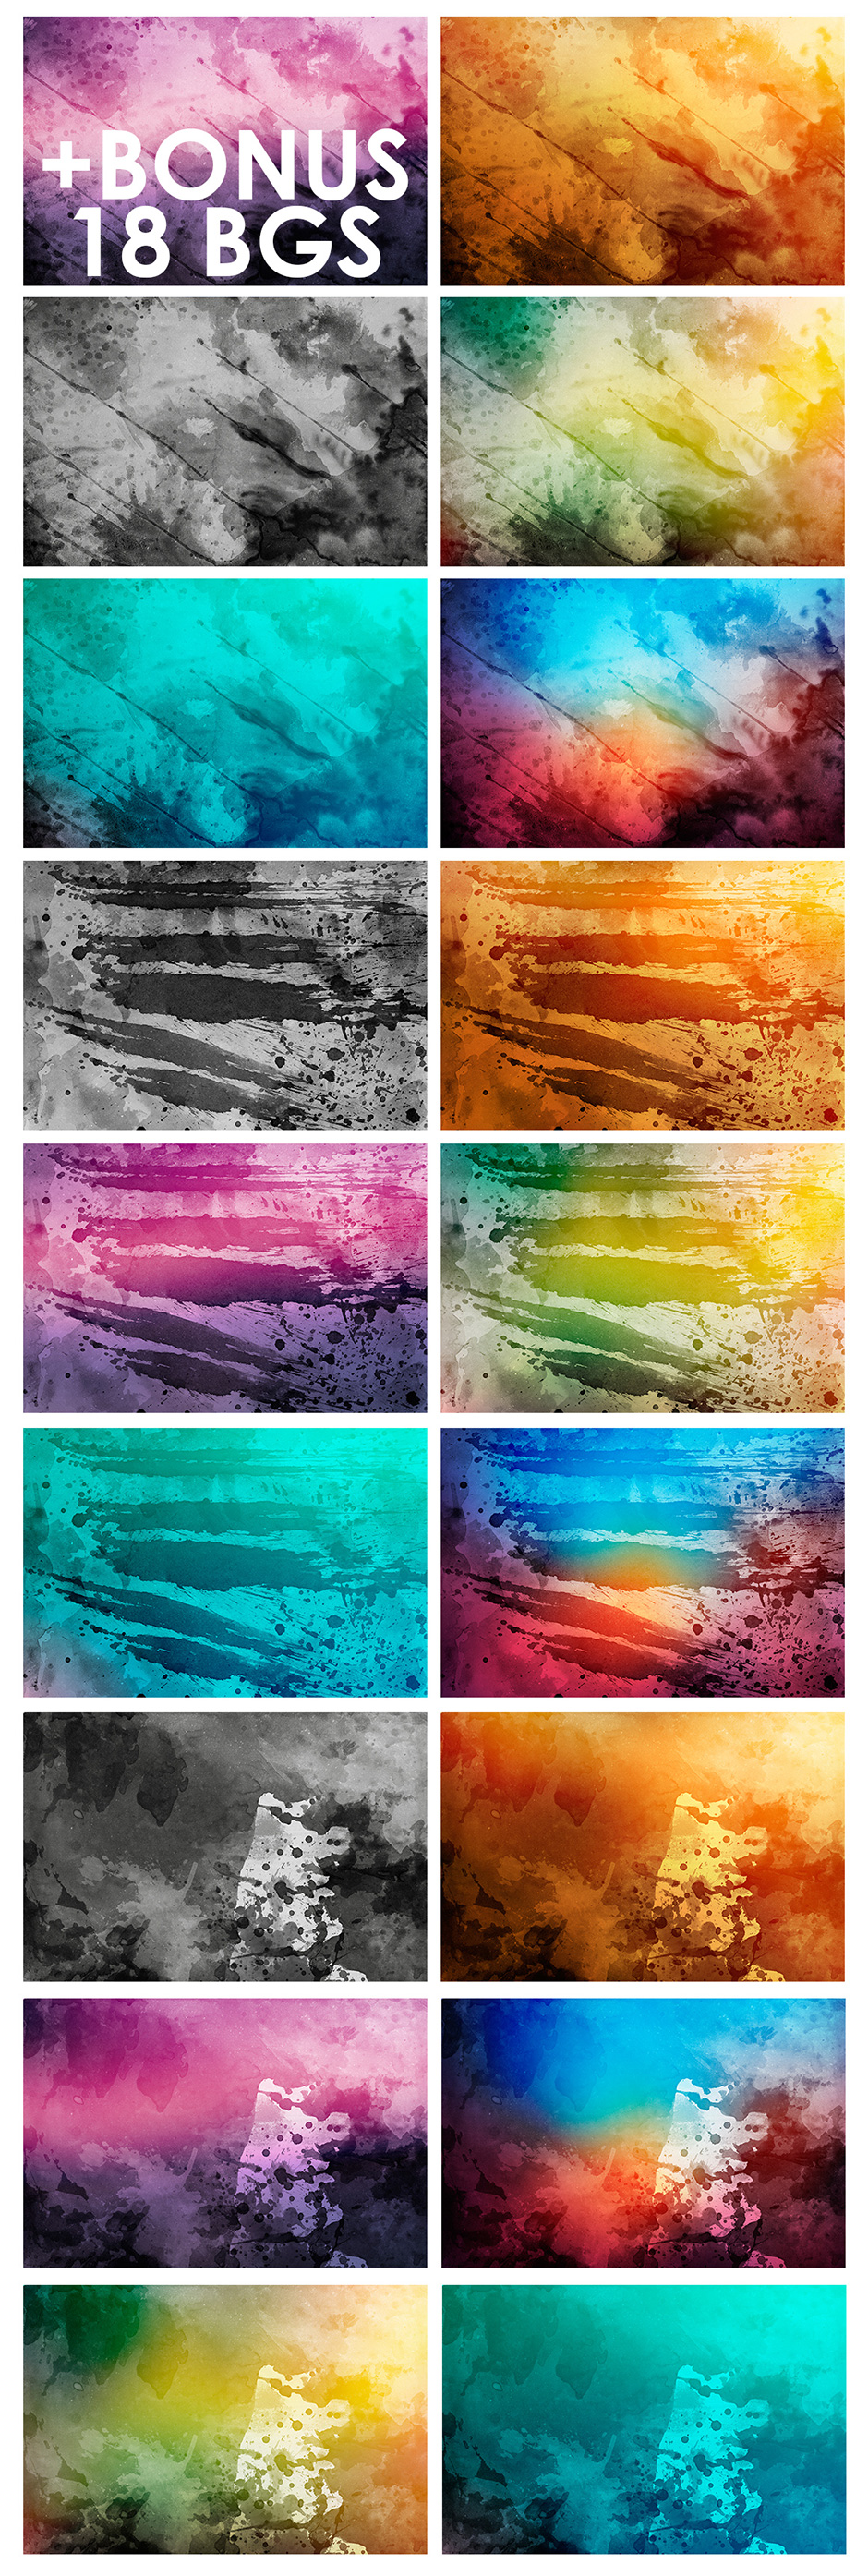 Watercolor Backgrounds 2 & Bonus